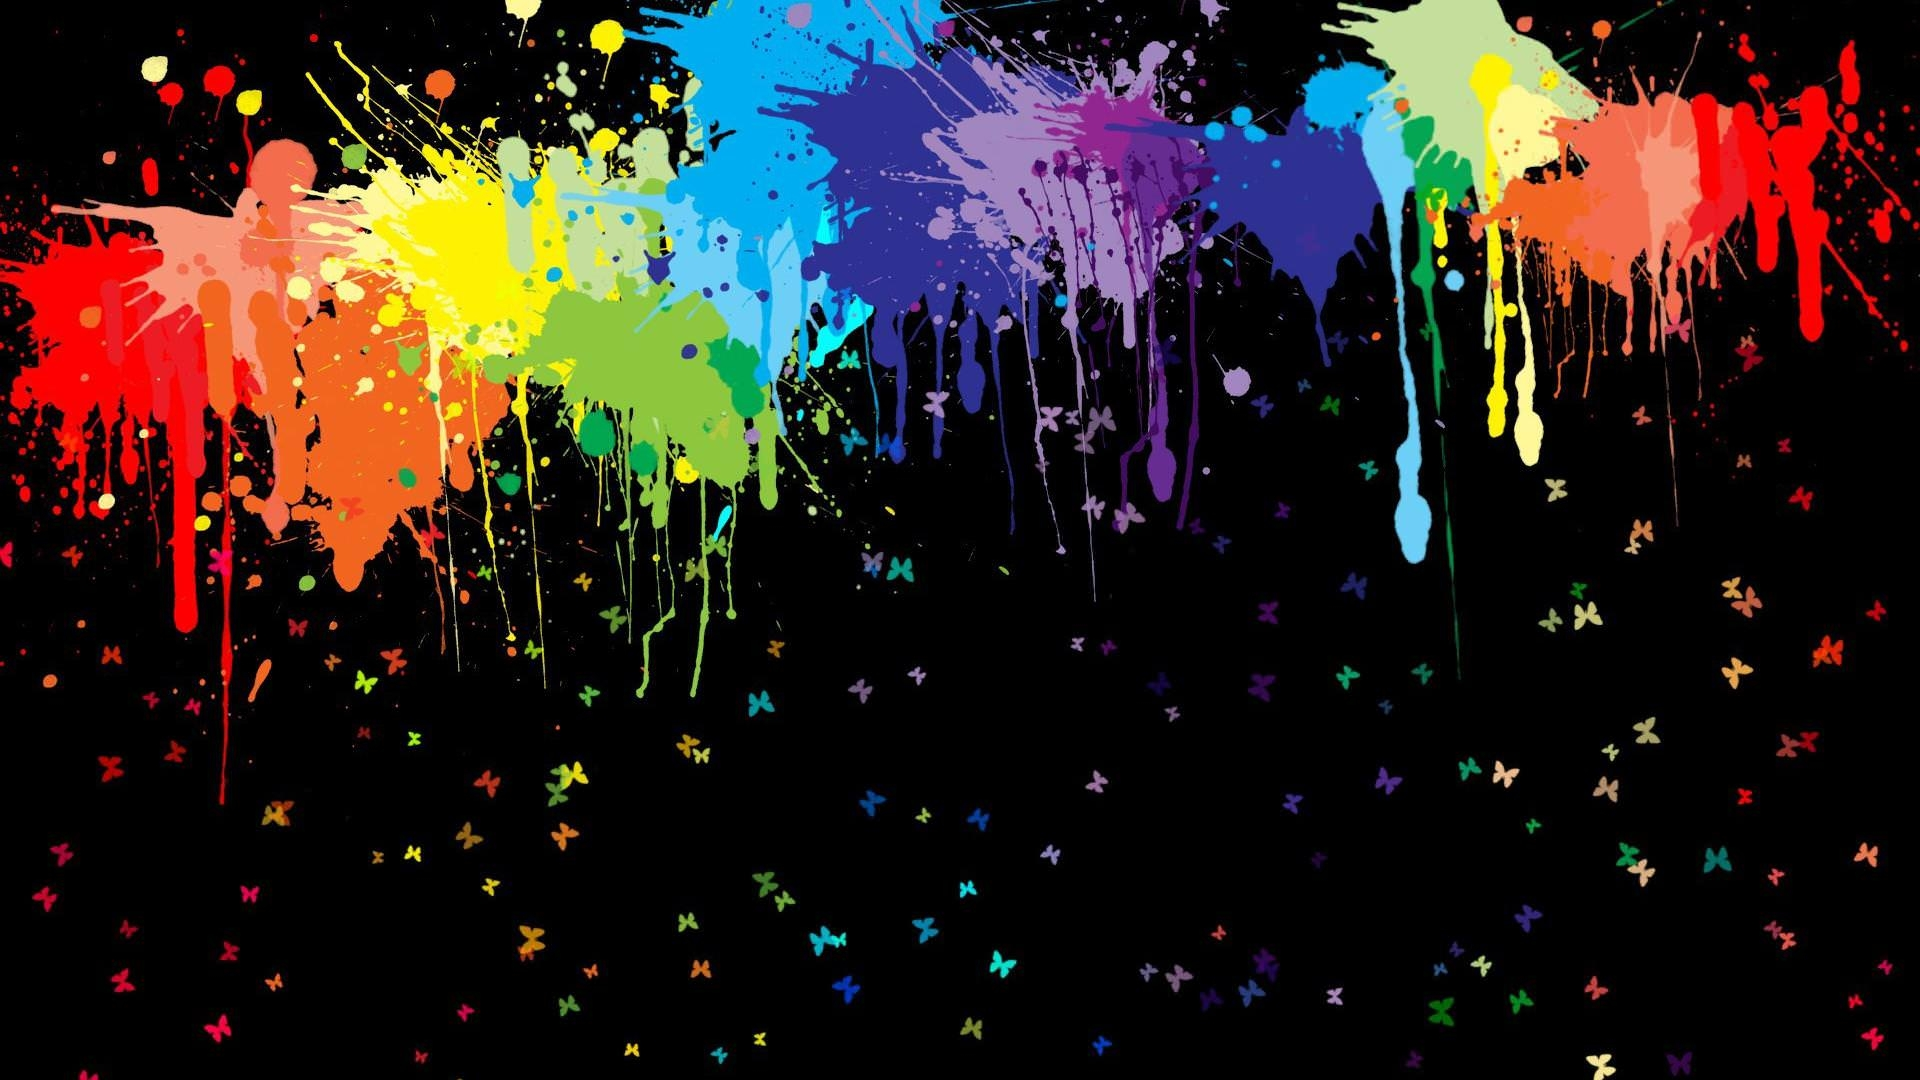 Fantastic Abstract Art Wallpaper